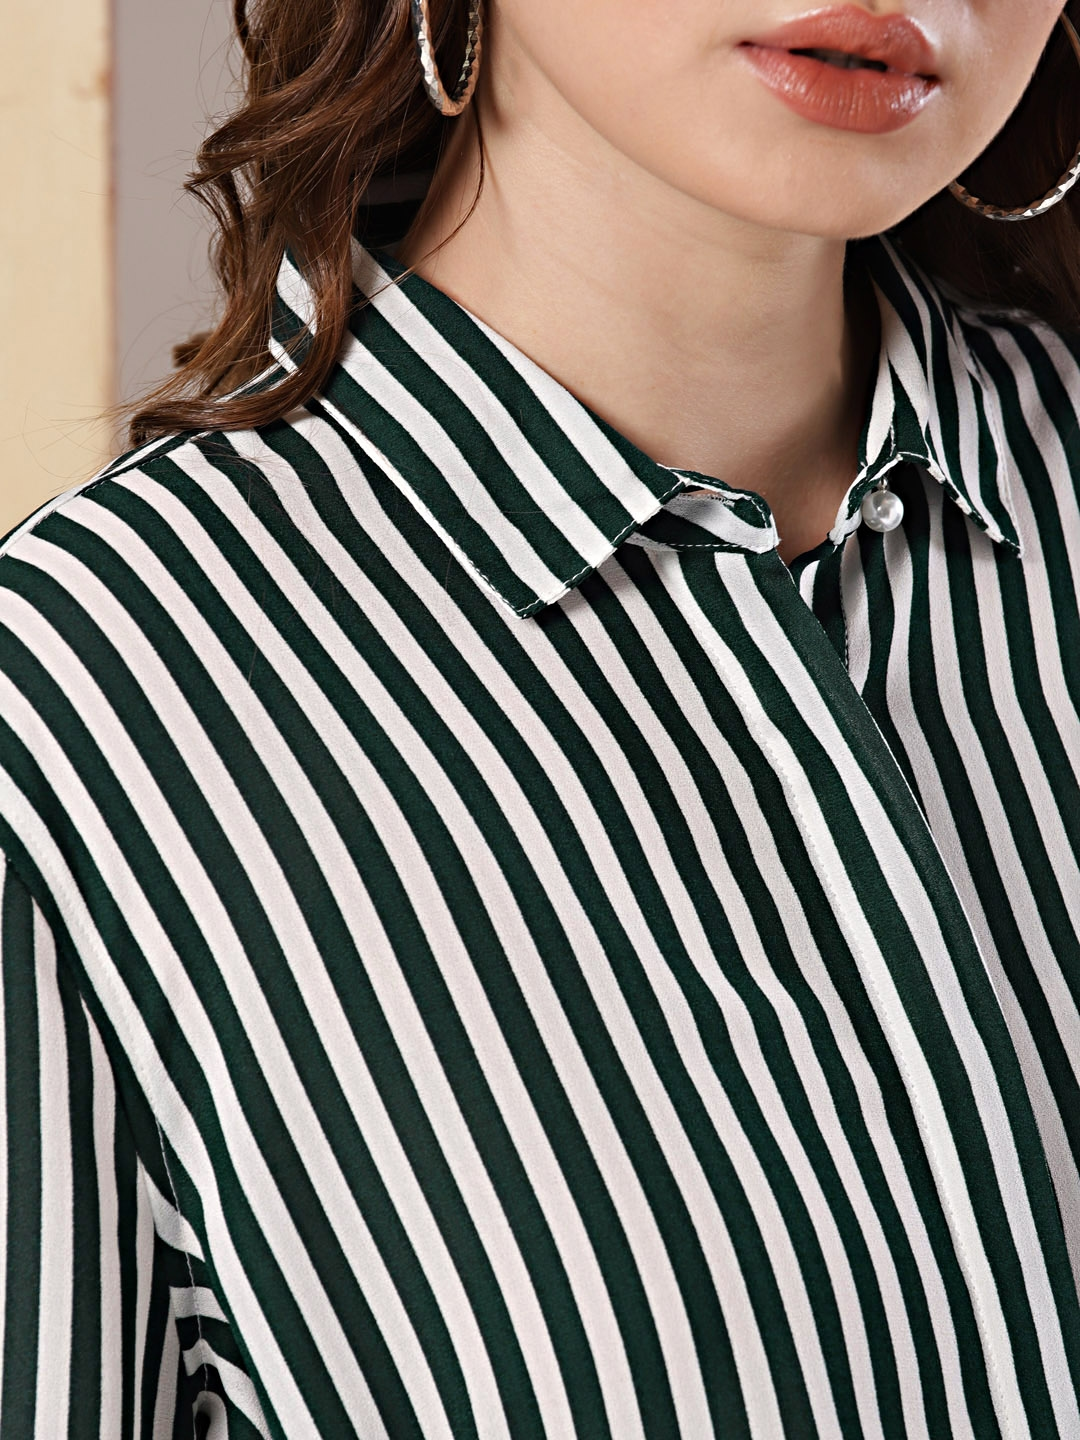 fb09b2eda326 Buy Her By Invictus Women Green & White Regular Fit Striped Casual ...